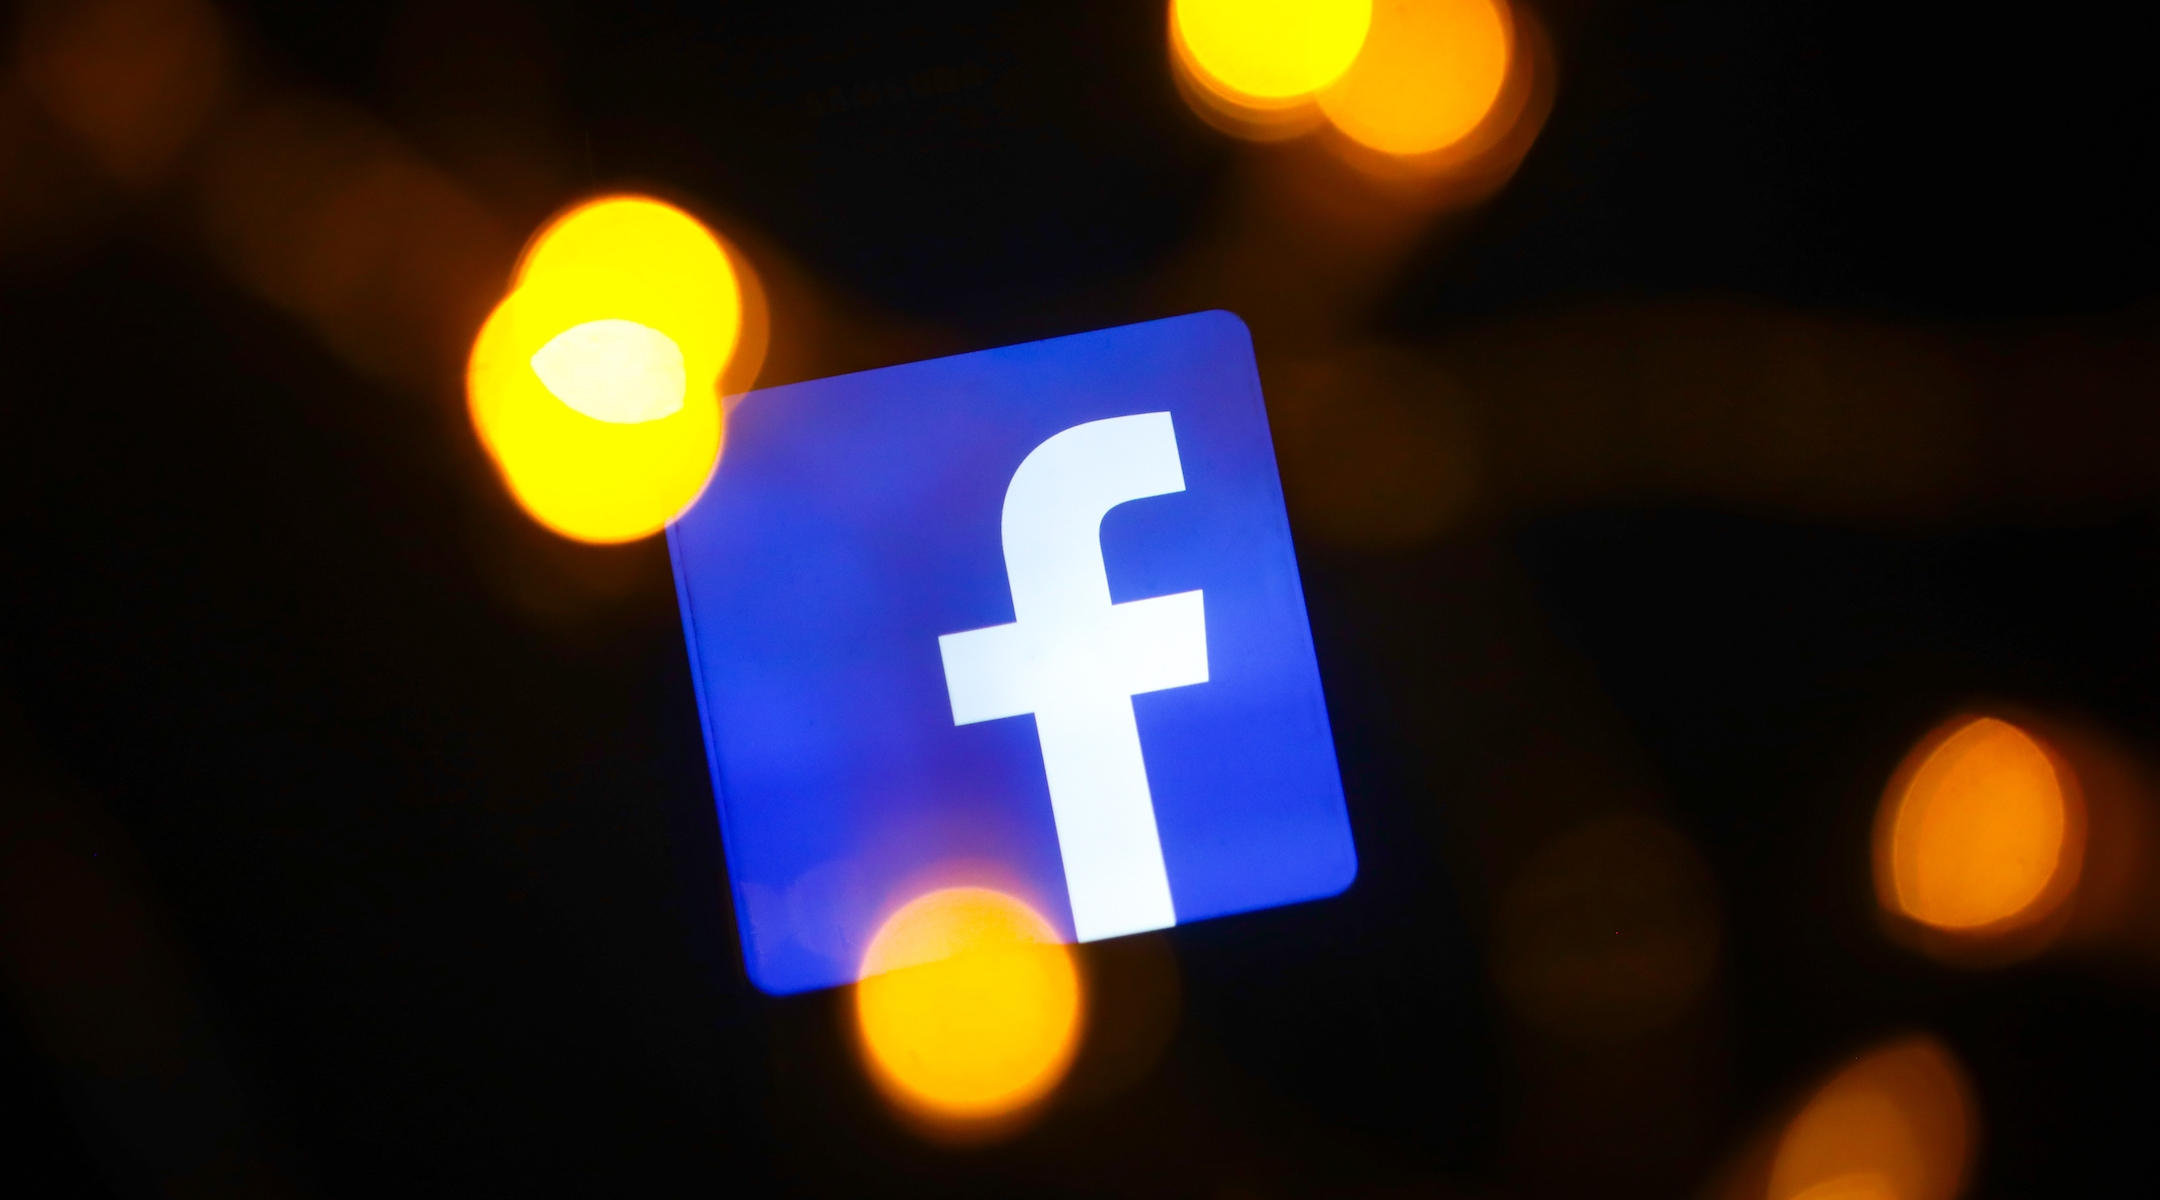 Facebook reports increased ad revenue even as ADL-led boycott reduced spending: Report